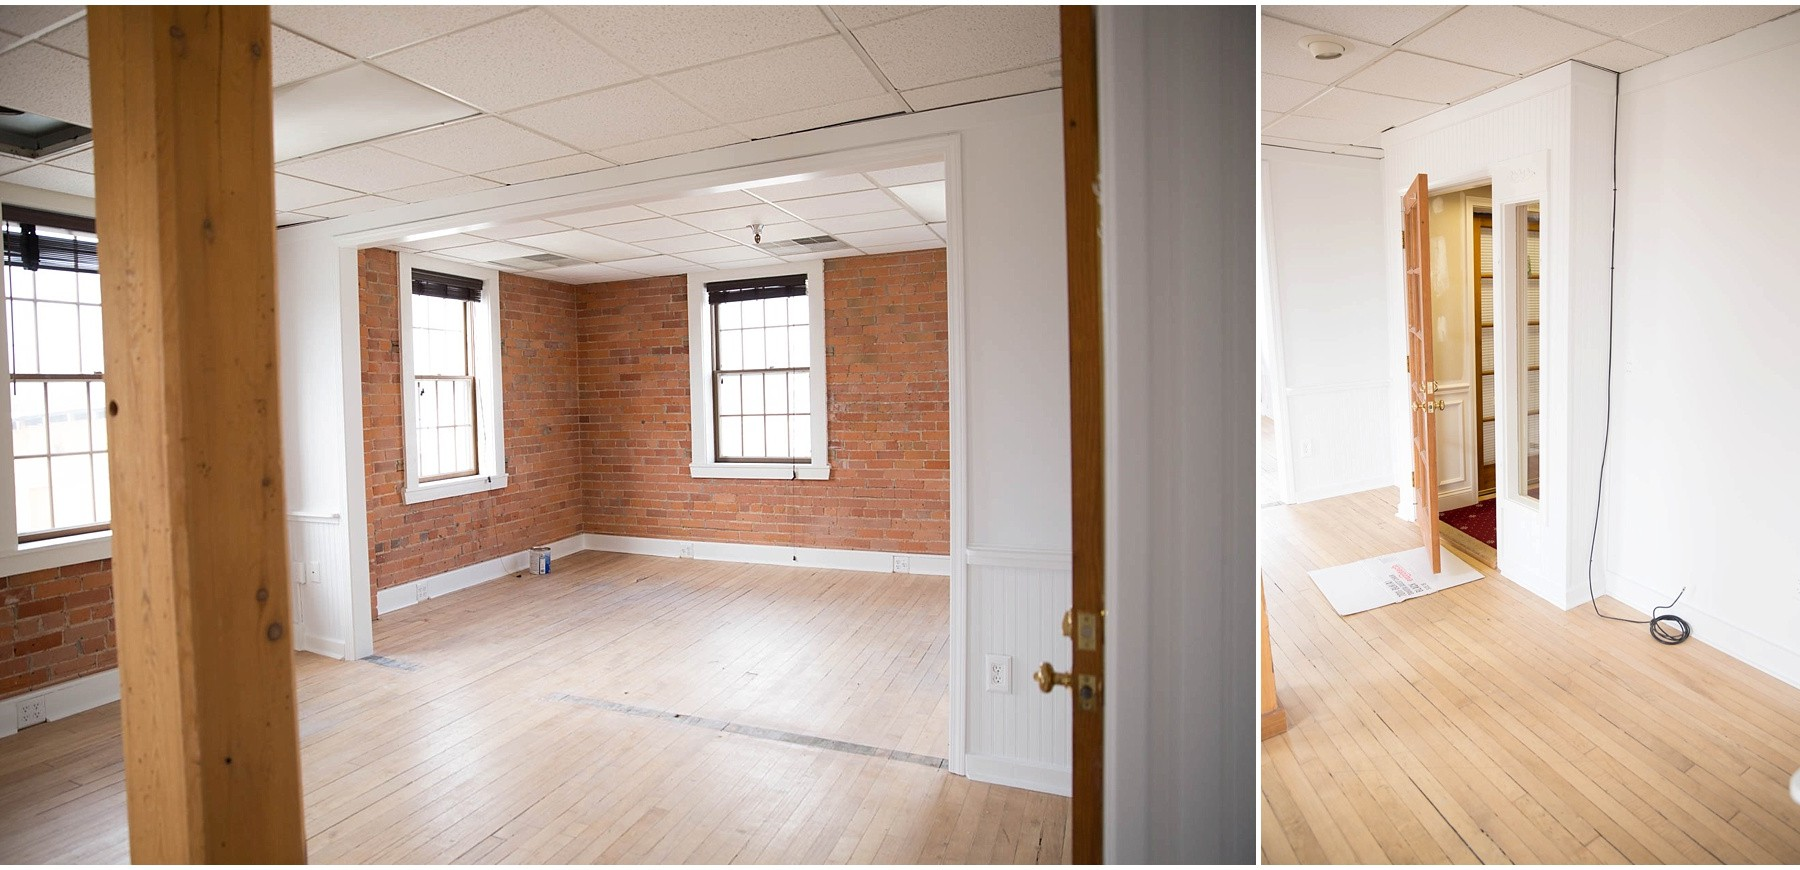 The Studio Transformation Before and After Pt. One